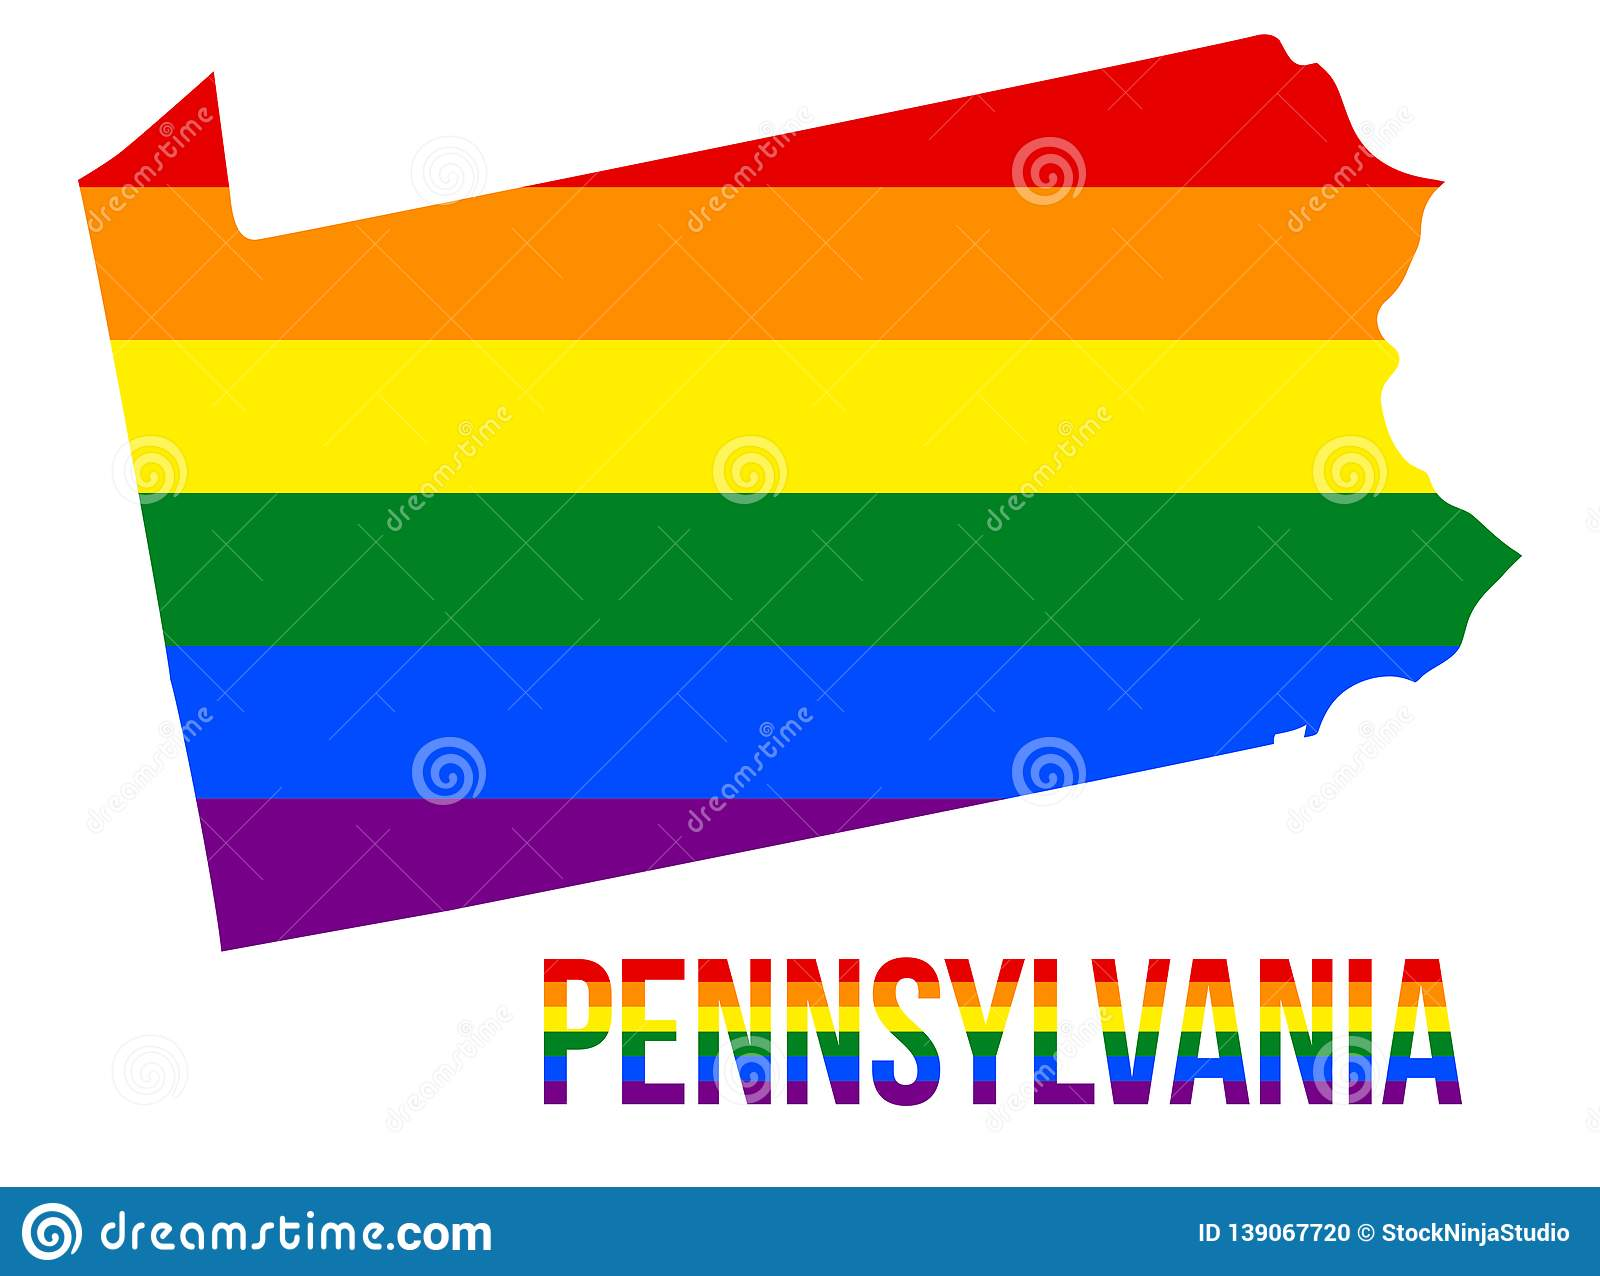 Pennsylvania State Map in LGBT Rainbow Flag Comprised Six Stripes With Pennsylvania LGBT Text